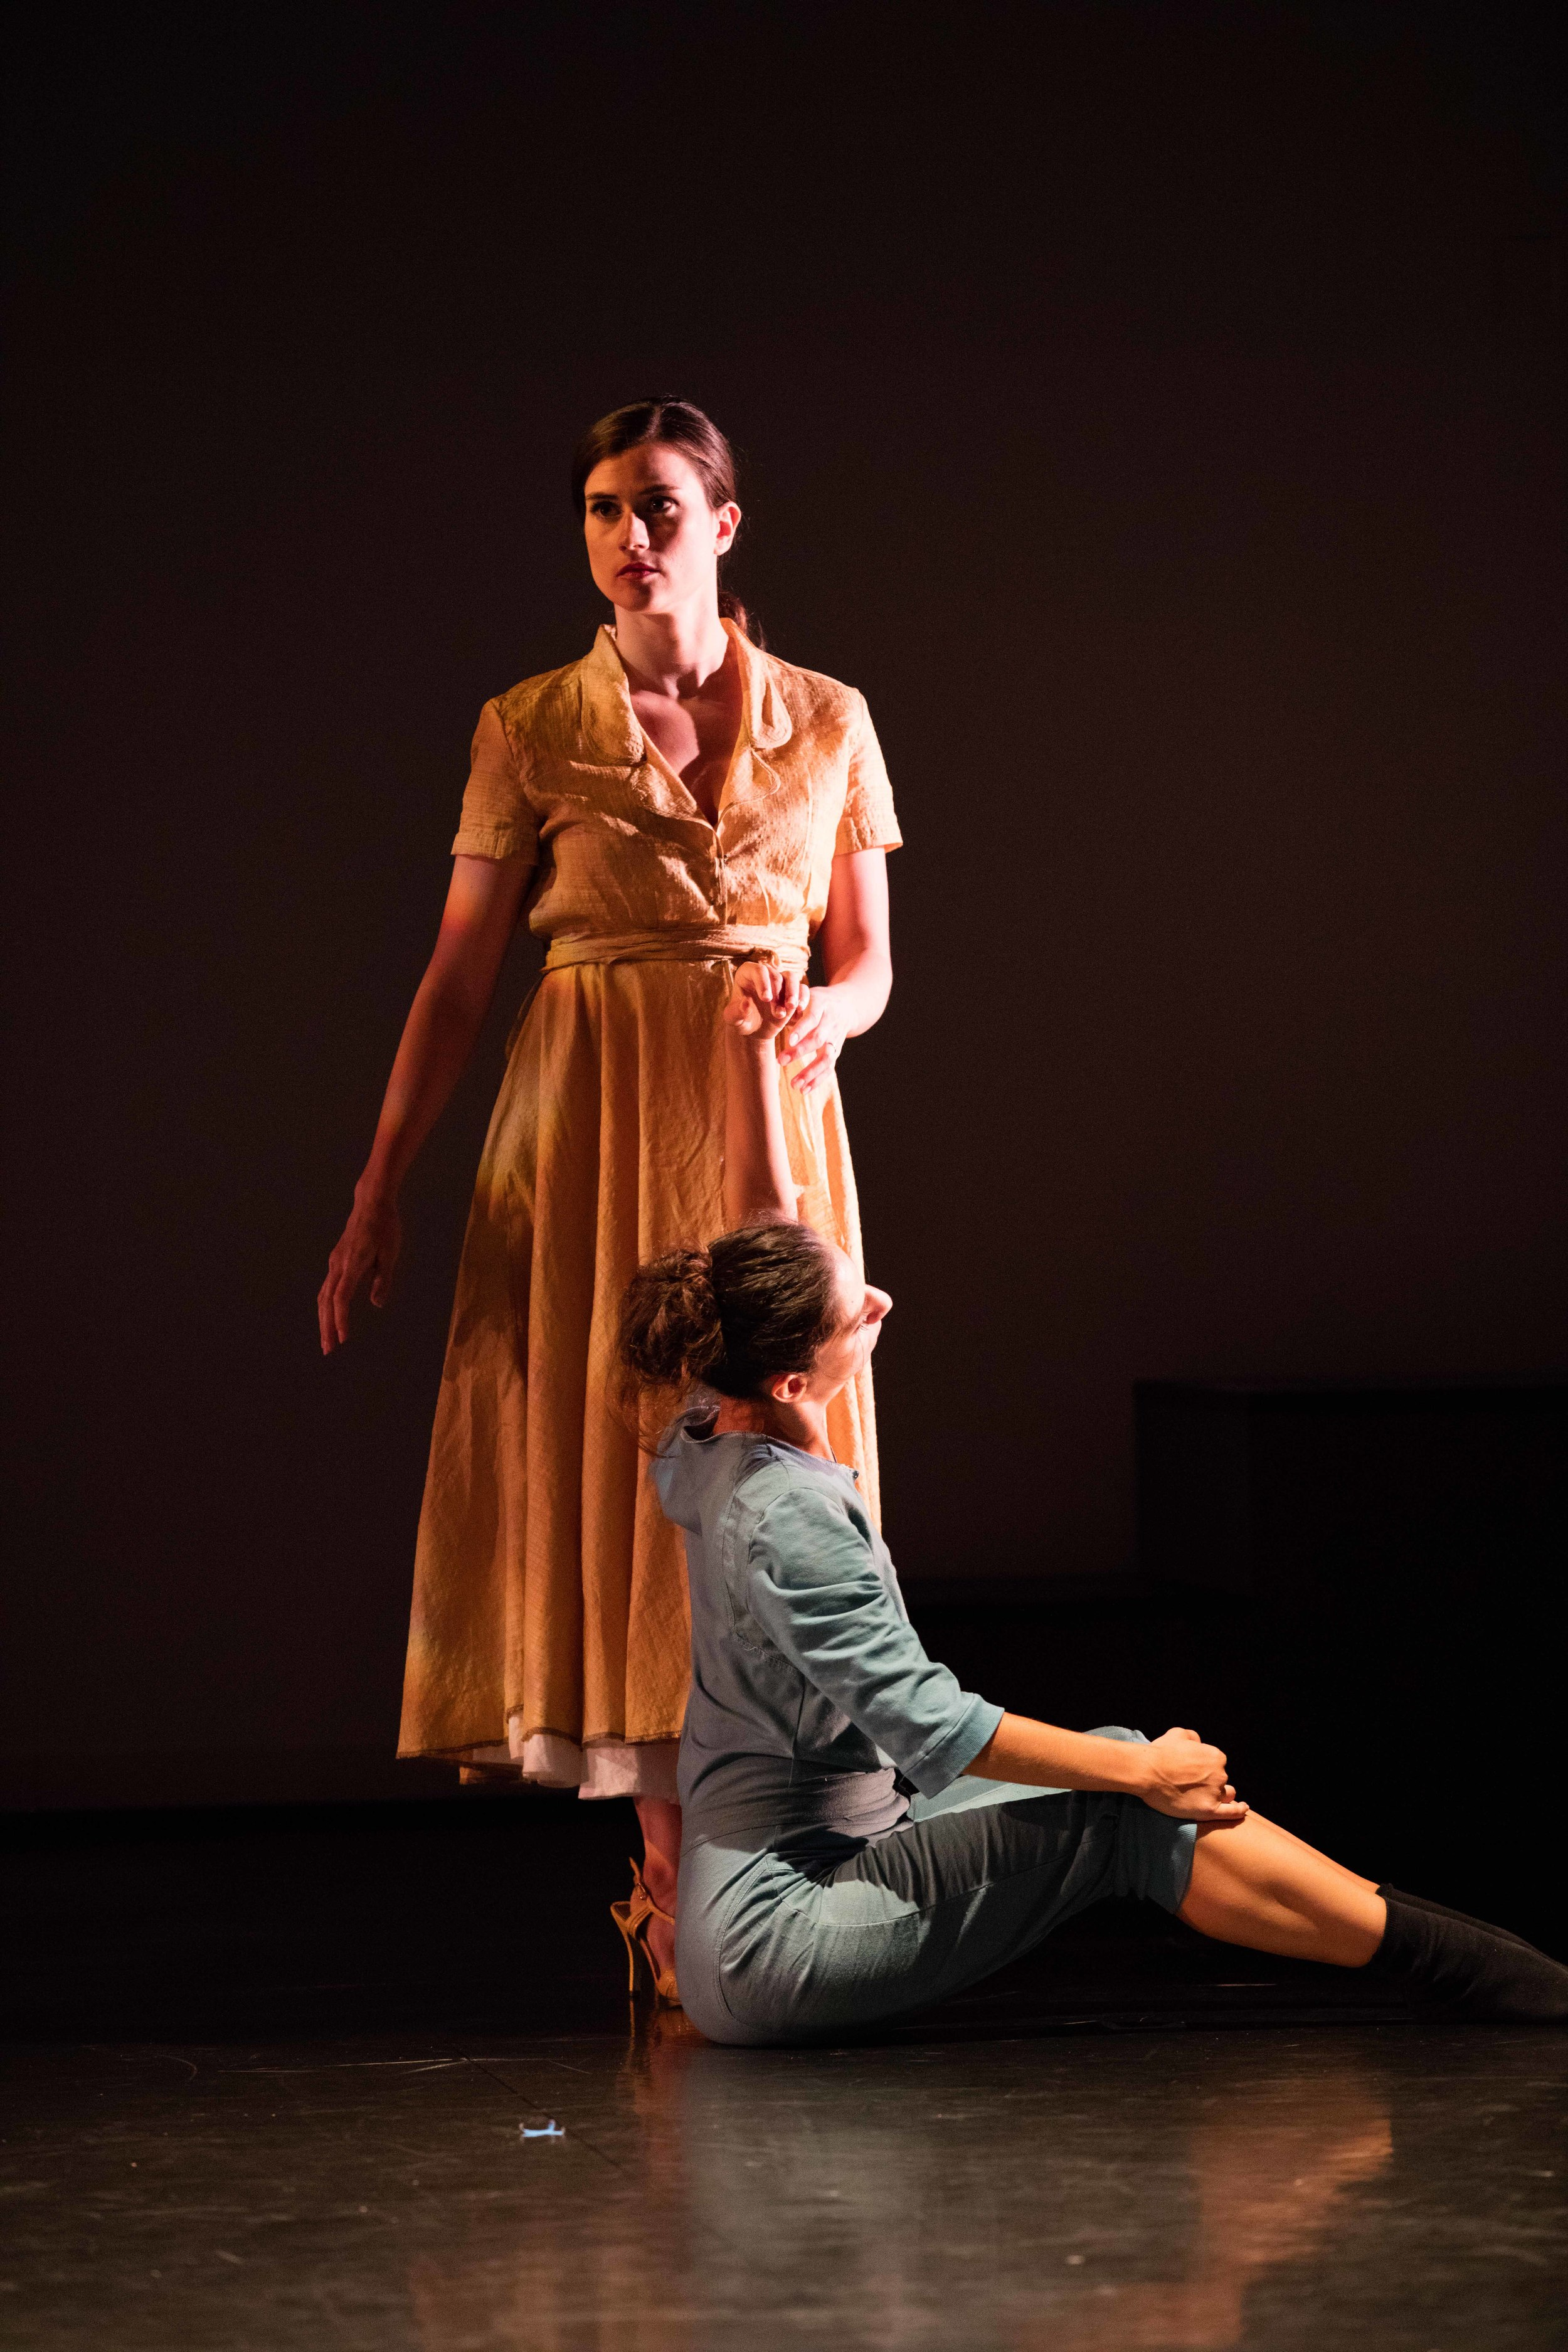 From the left: Anna Ward and Magdalena Gyftopoulos/photo by Daniel J. van Ackere